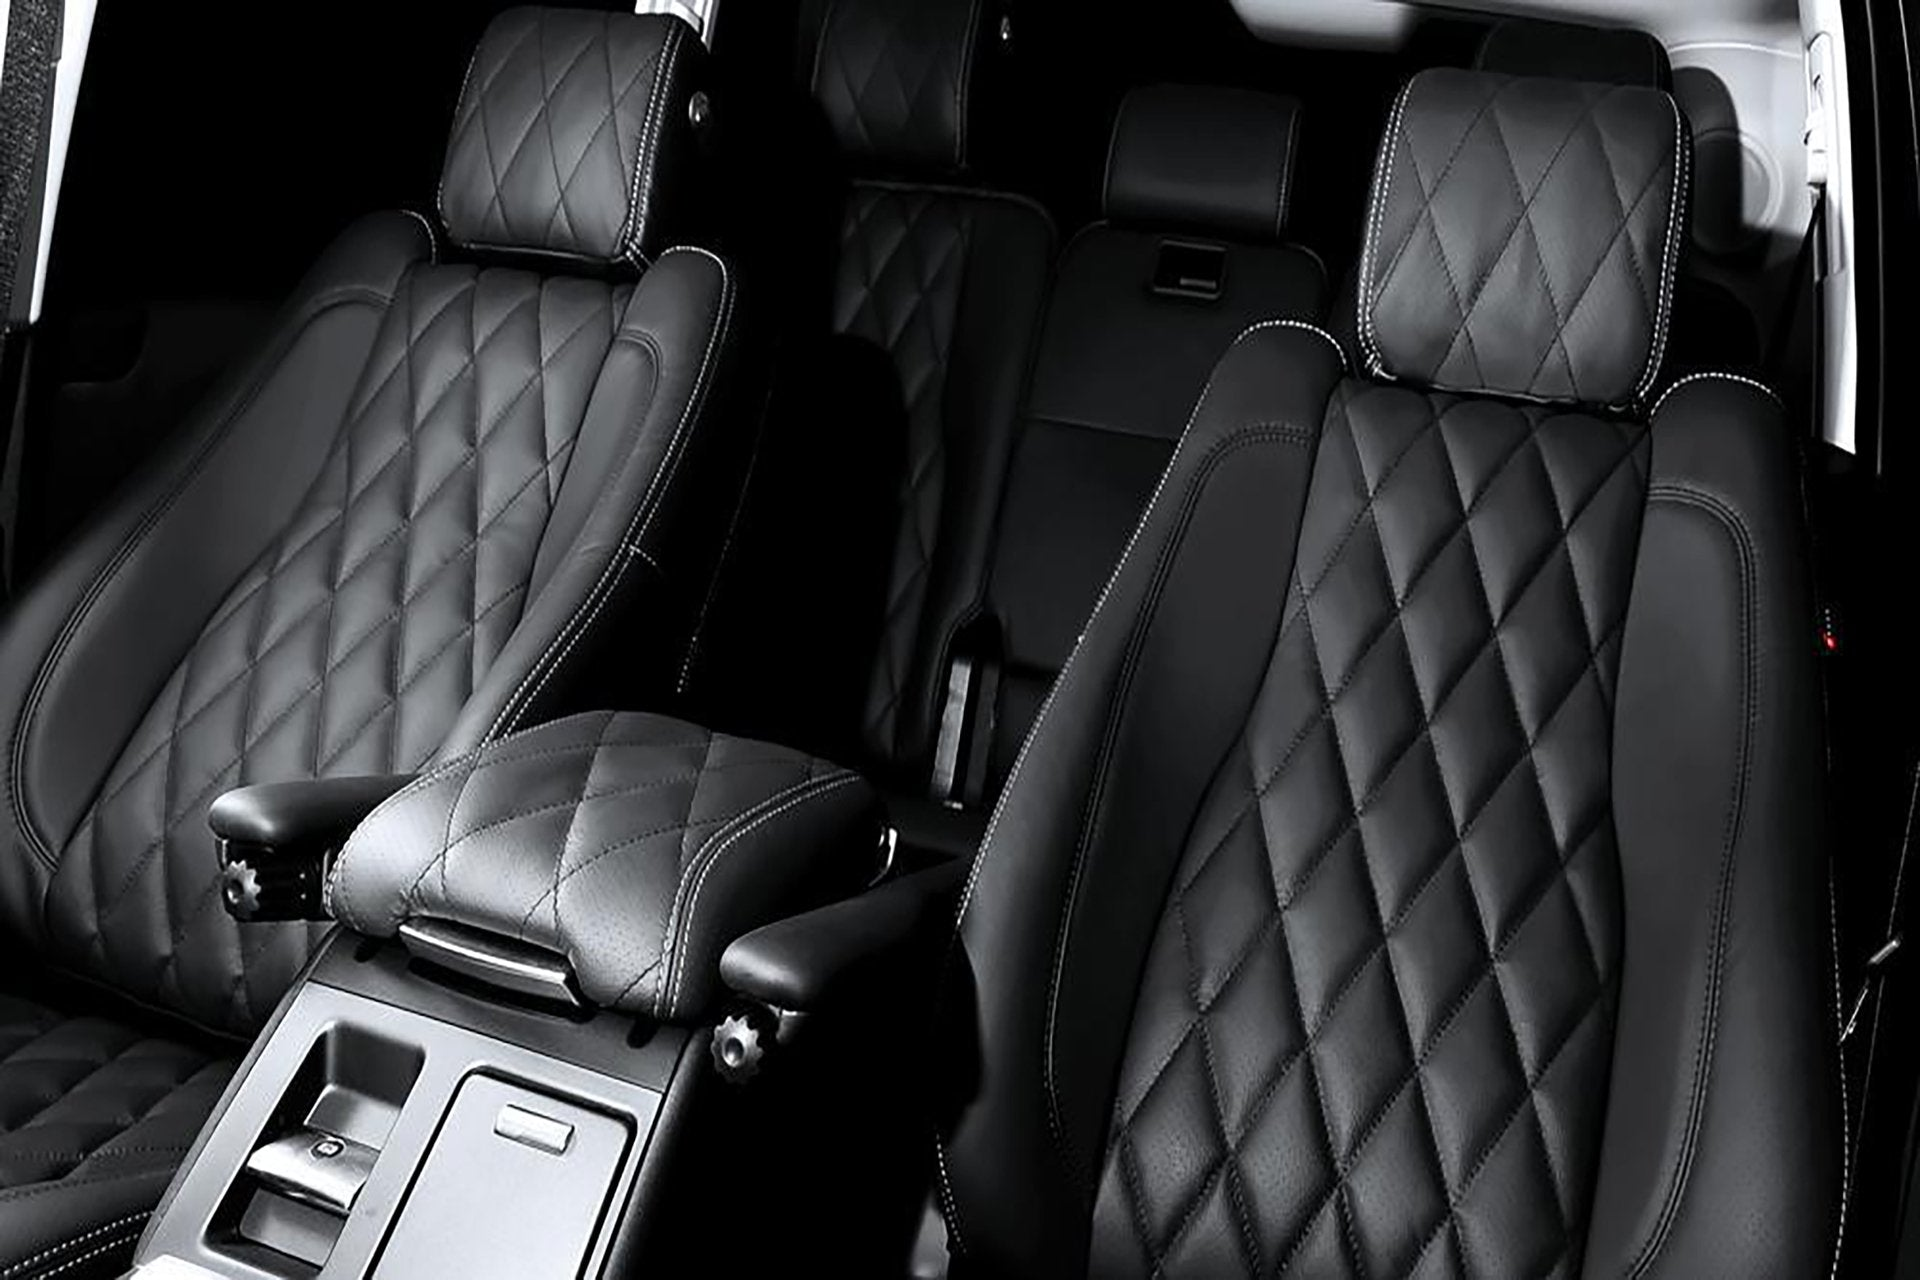 Range Rover (2009-2012) Leather Interior by Kahn - Image 1642